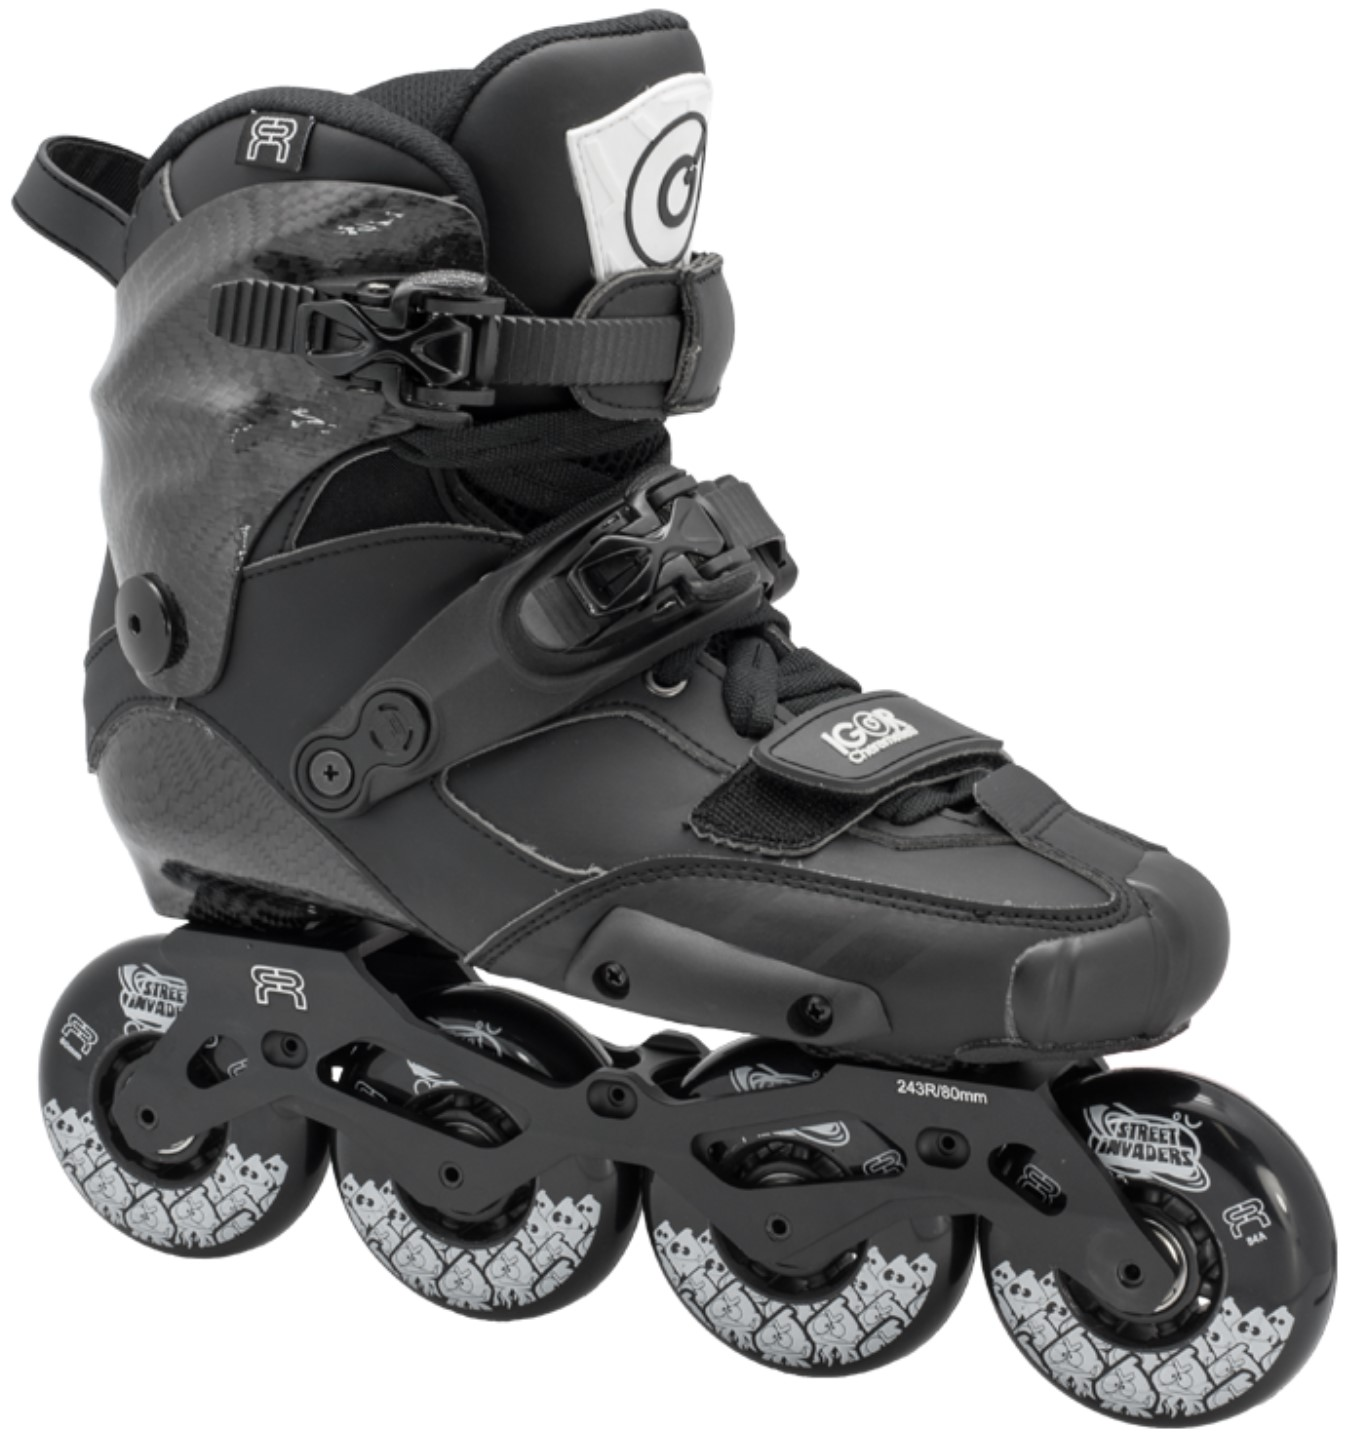 Igor inline skate in black for slalom competitions